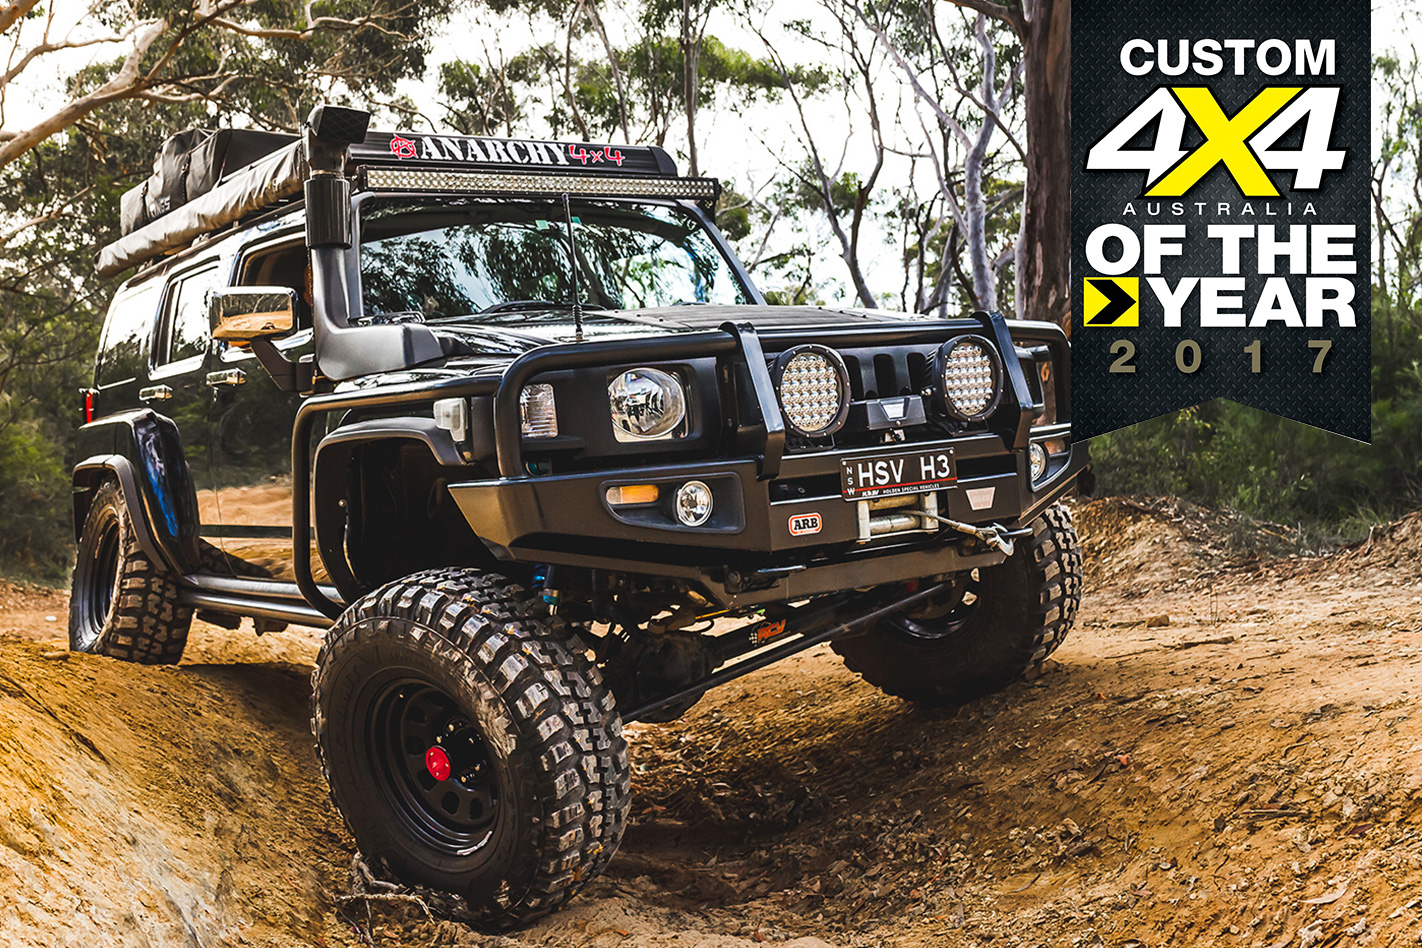 HSV-powered H3 Hummer: 2017 Custom 4x4OTY contender